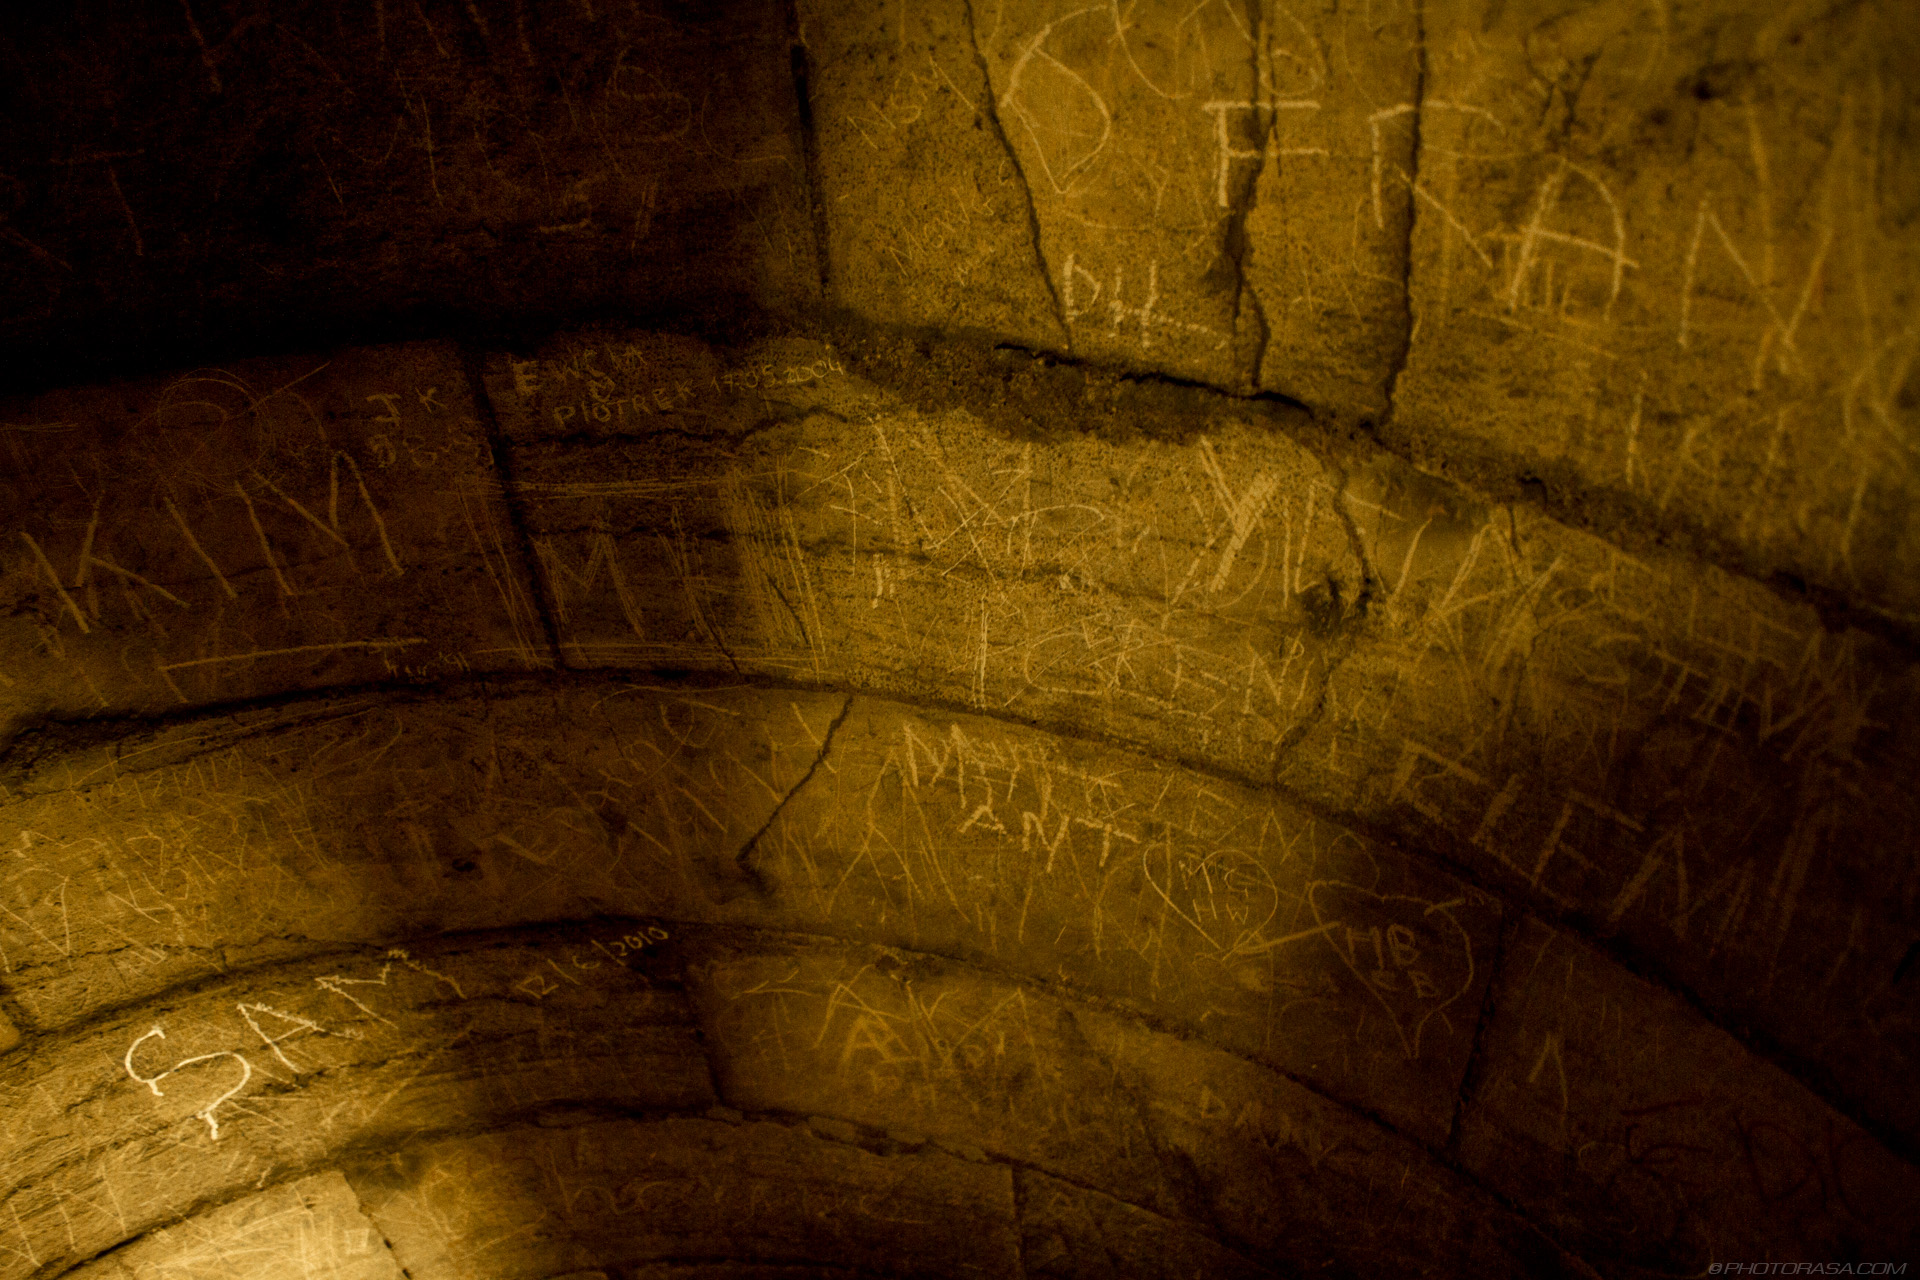 http://photorasa.com/yorkminster-cathedral/graffiti-on-old-cathedral-wall/